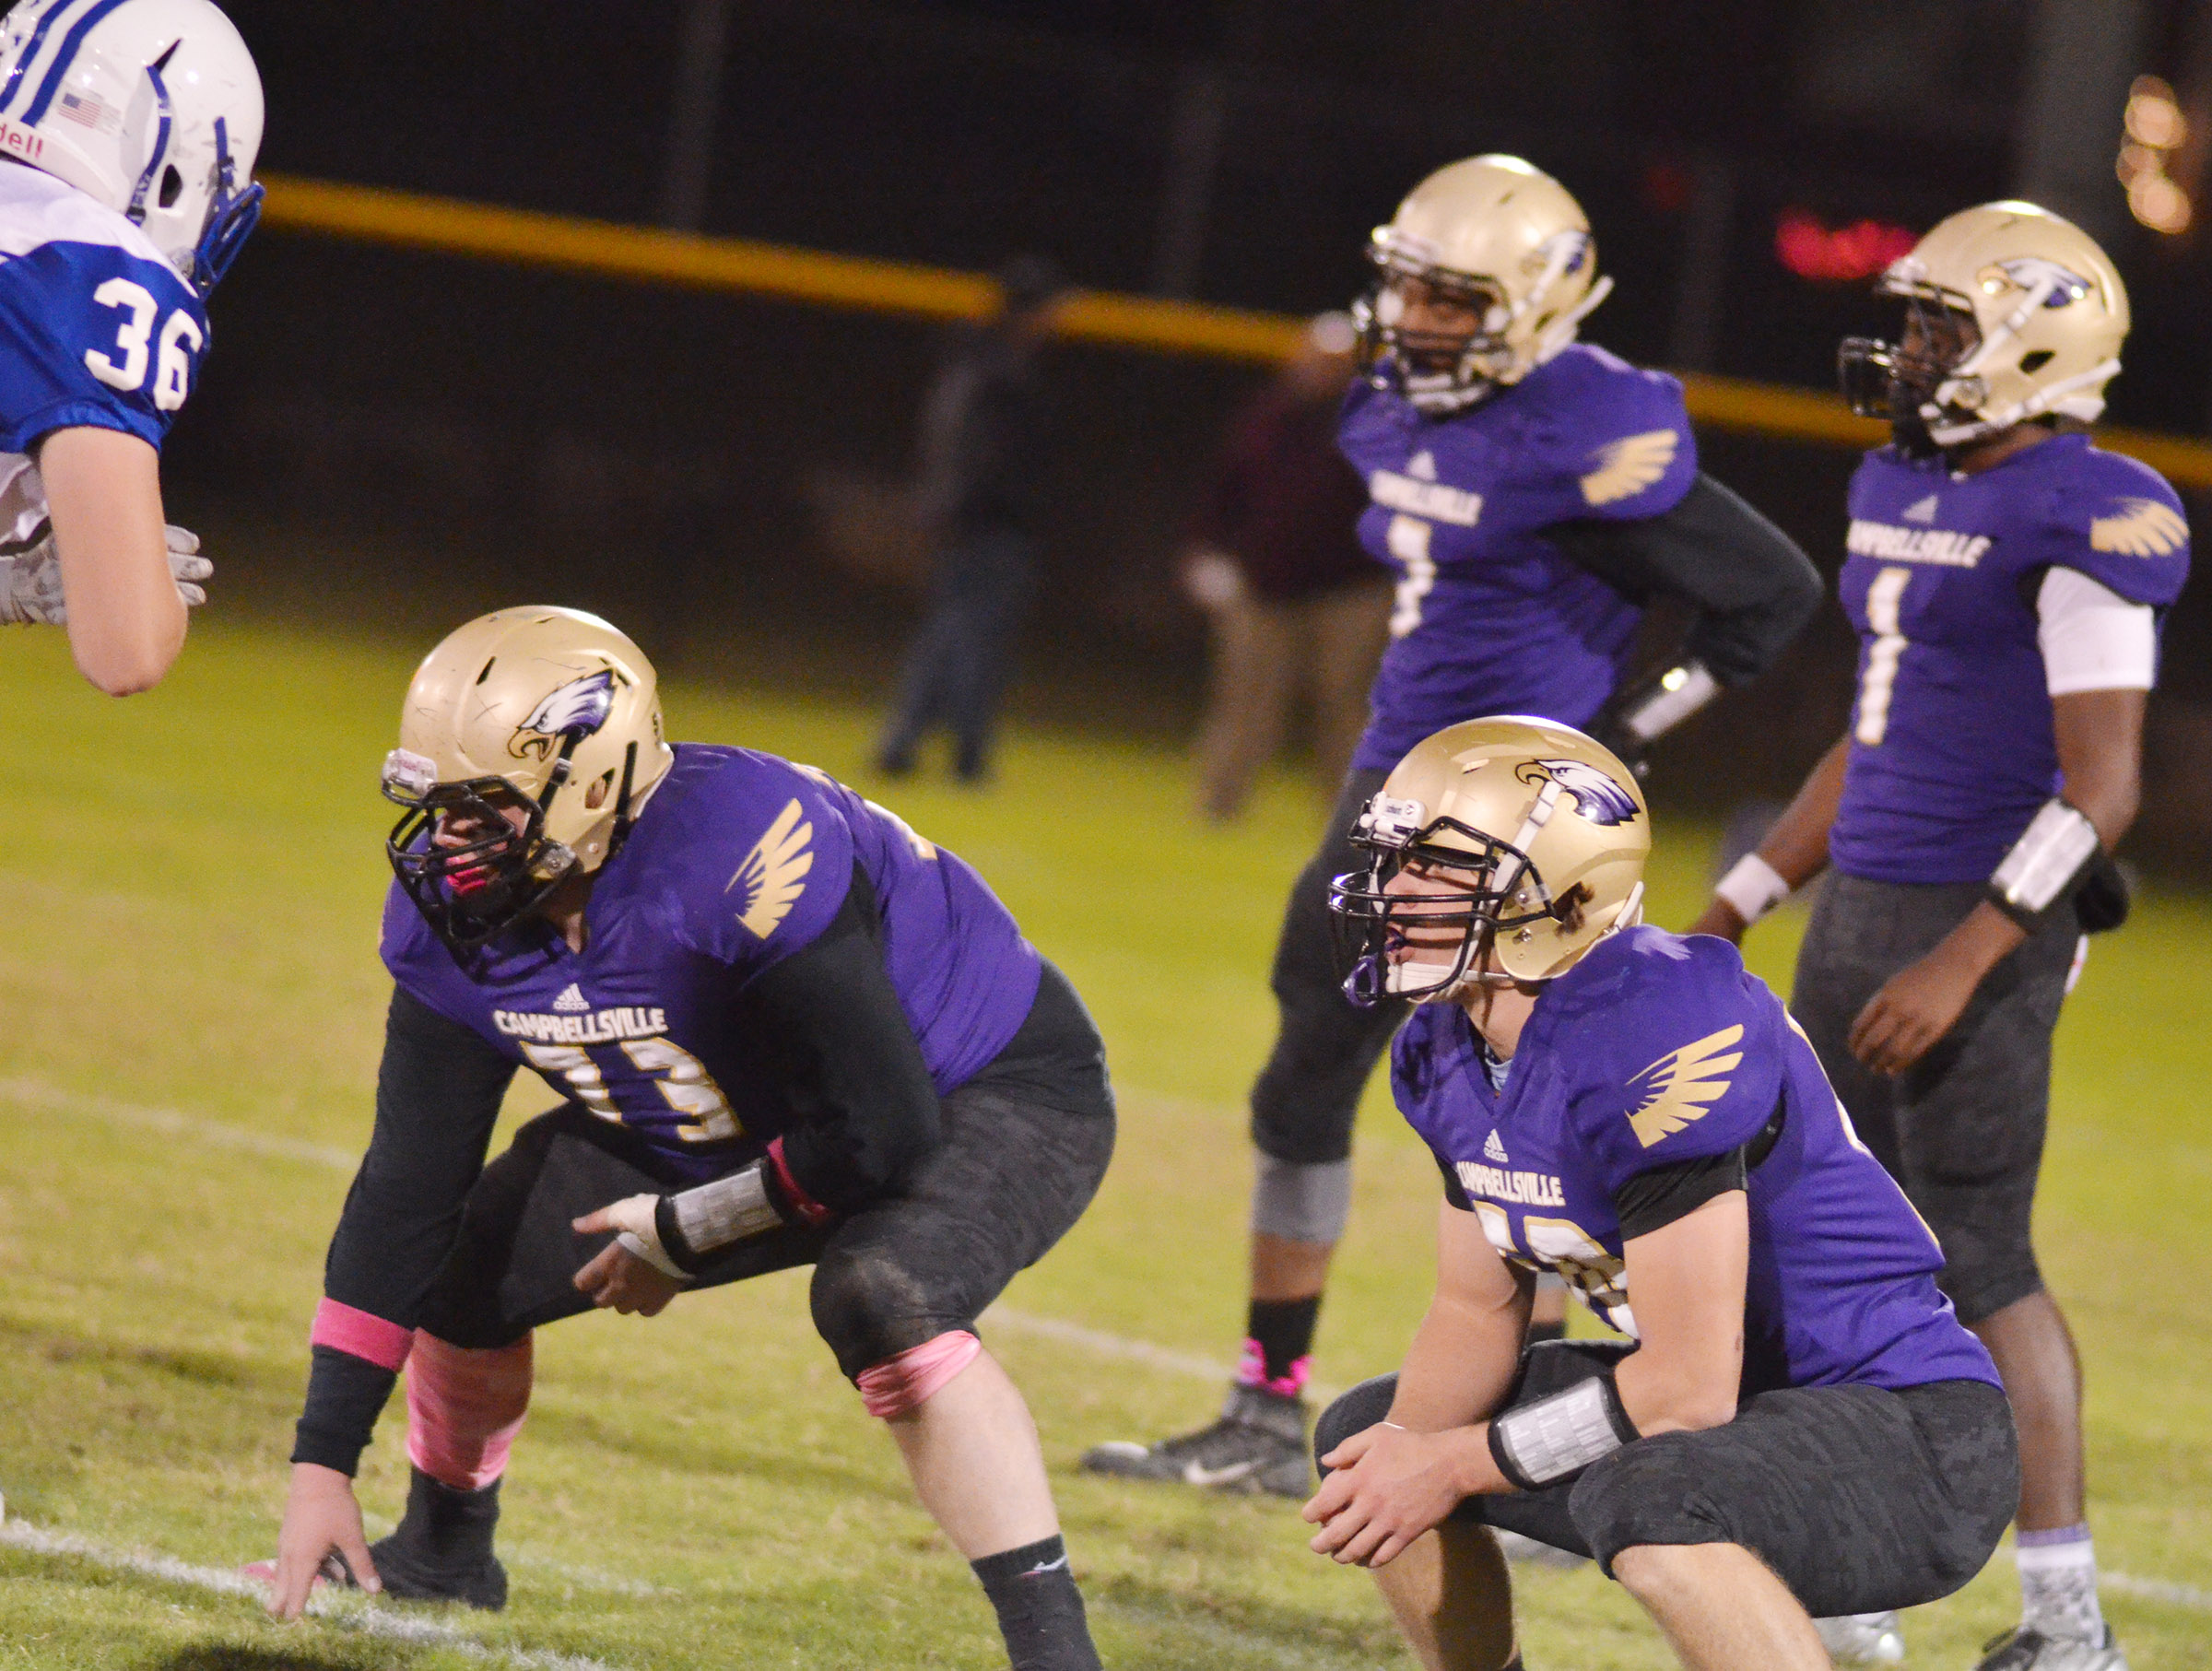 CHS senior Ryan Jeffries, at left, and junior Tristan Johnson get ready for the snap.